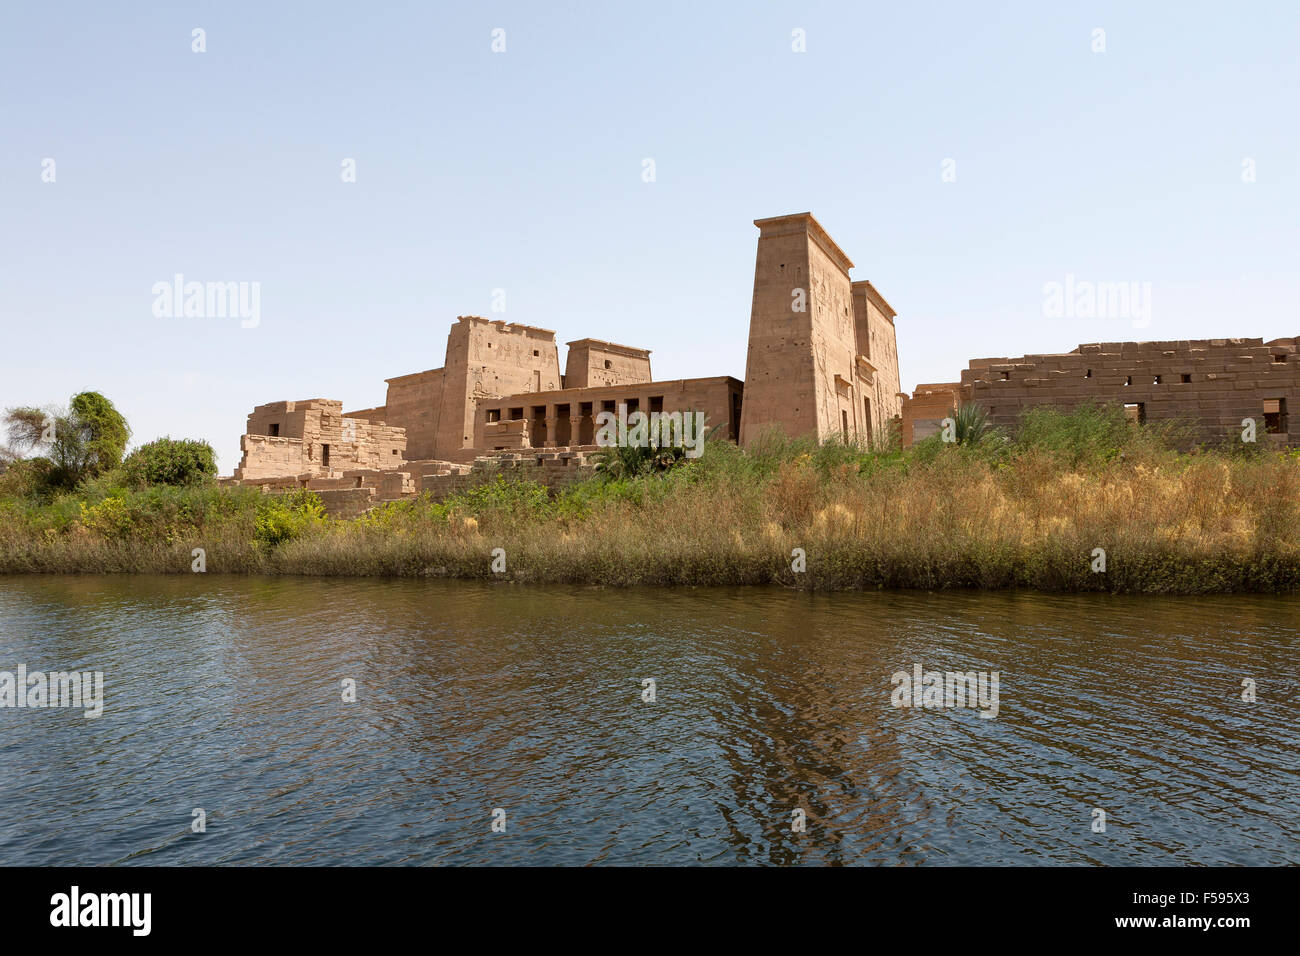 Temple of Philae, Island of Isis, Agliki, Aswan, Upper Egypt Seen from the water. - Stock Image